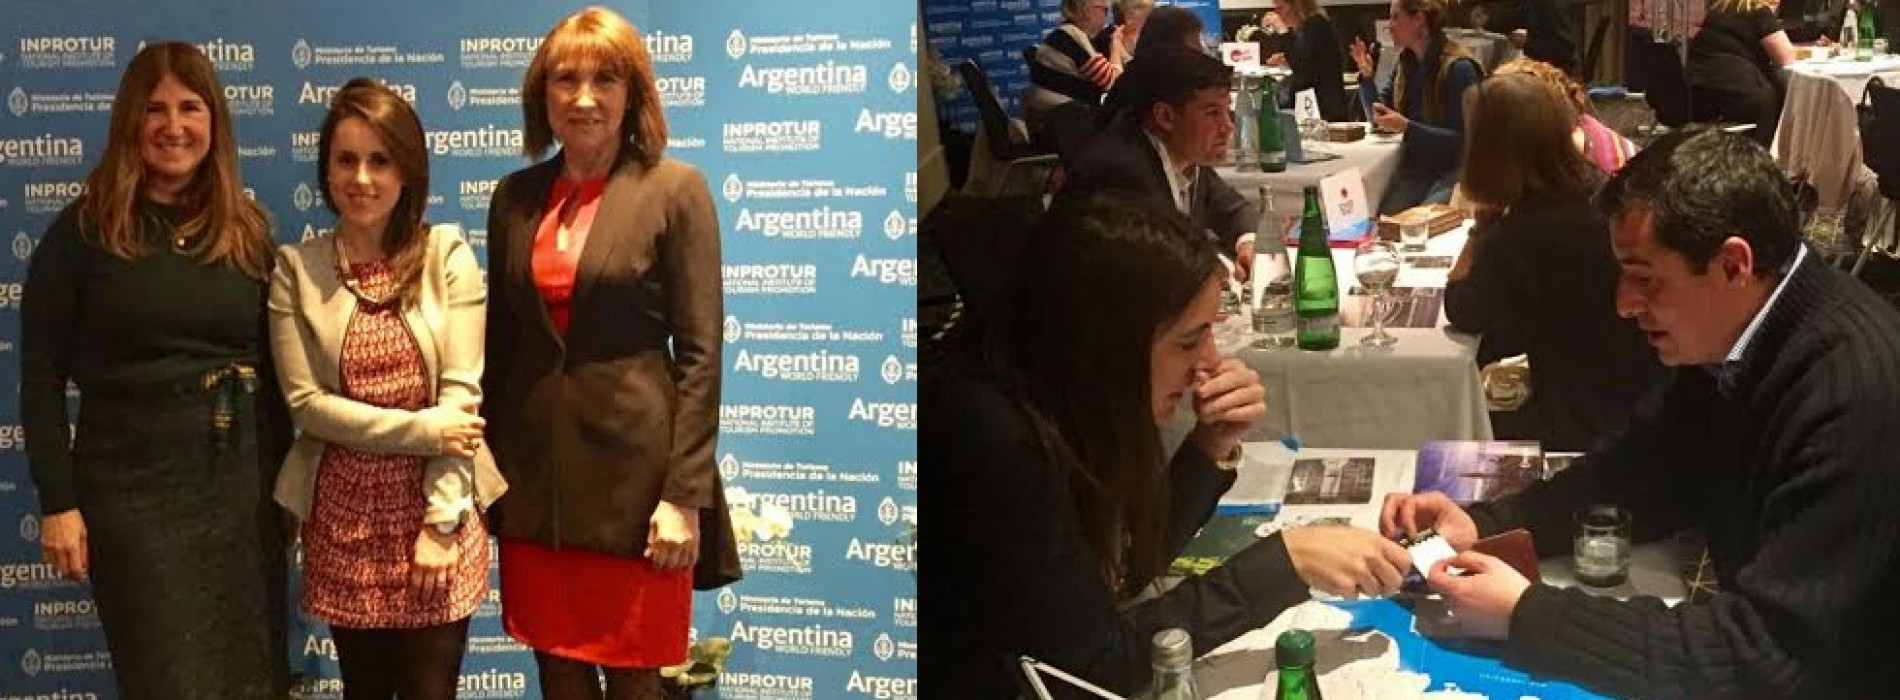 Argentinian important trade mission in Ireland and Scotland